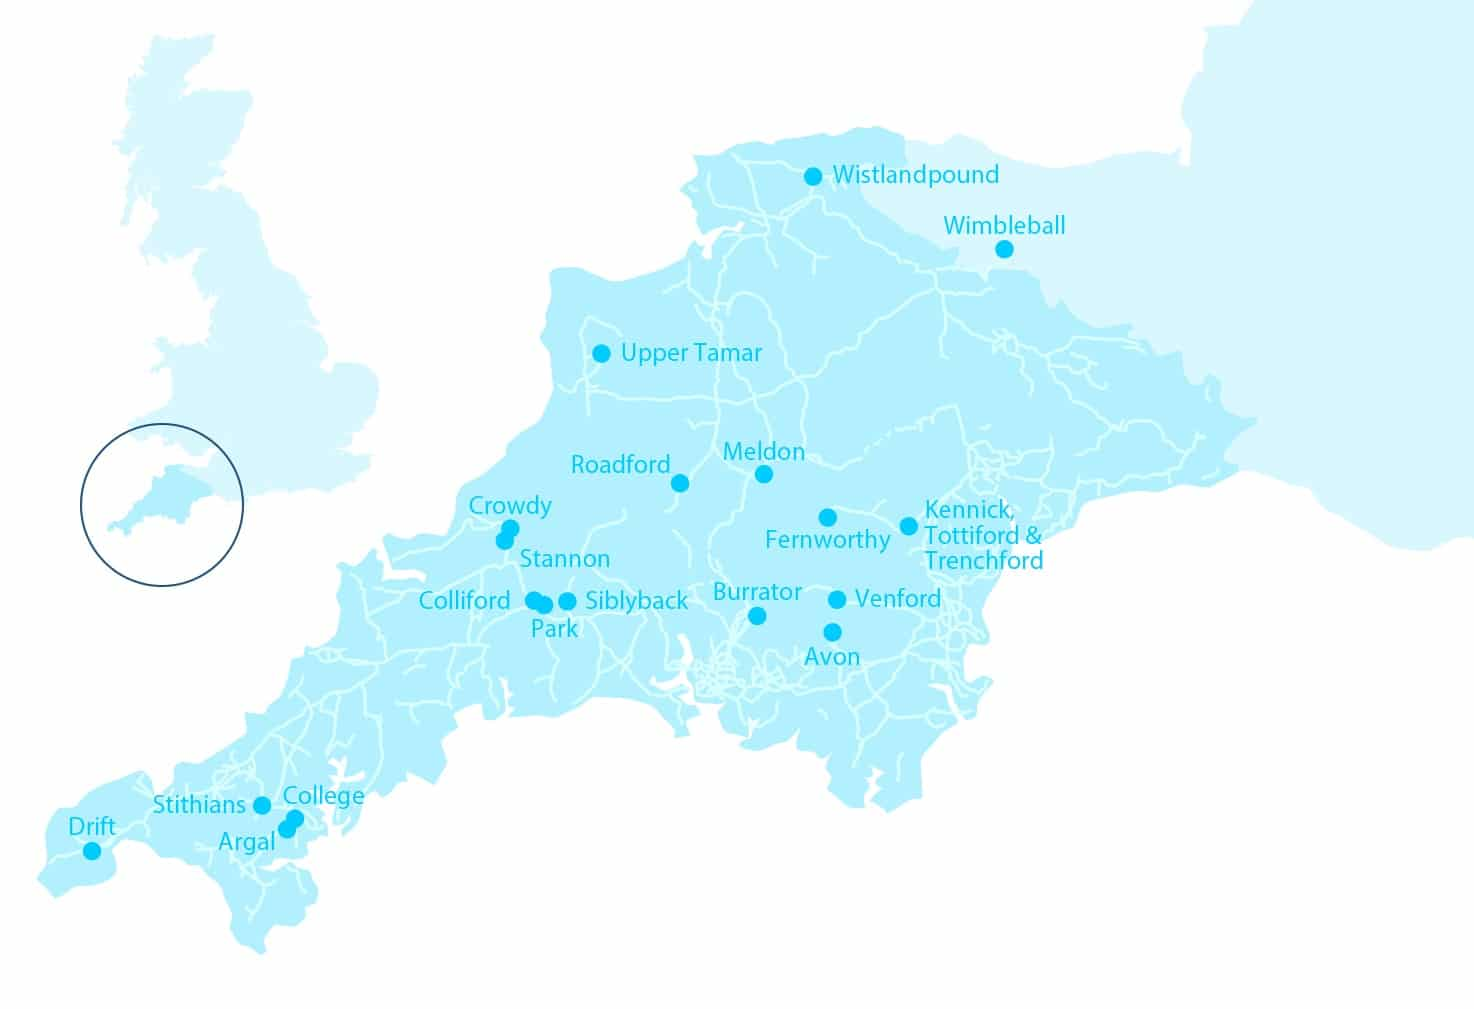 Pennon owns South West Water, which operates in southwest England